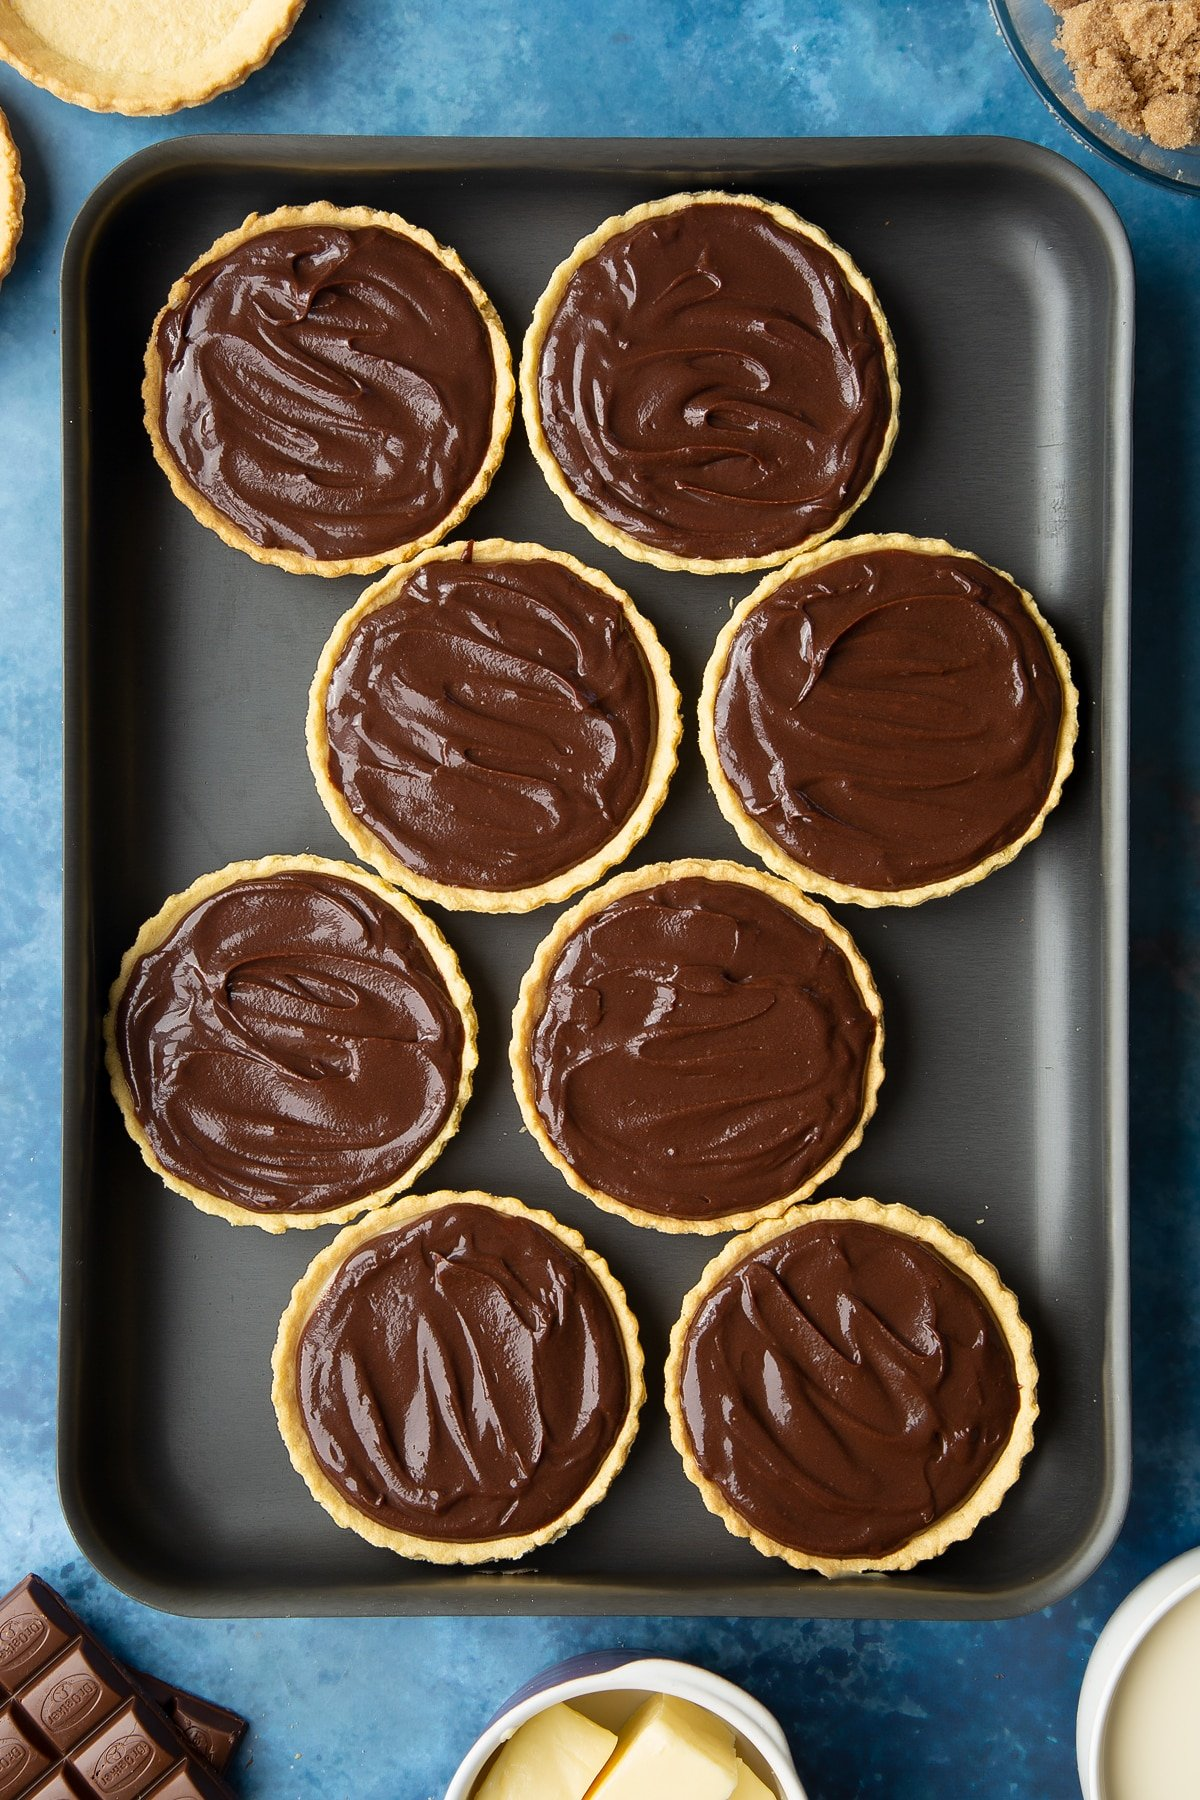 Mini chocolate tarts filed with caramel and chocolate ganache on a large metal tray.